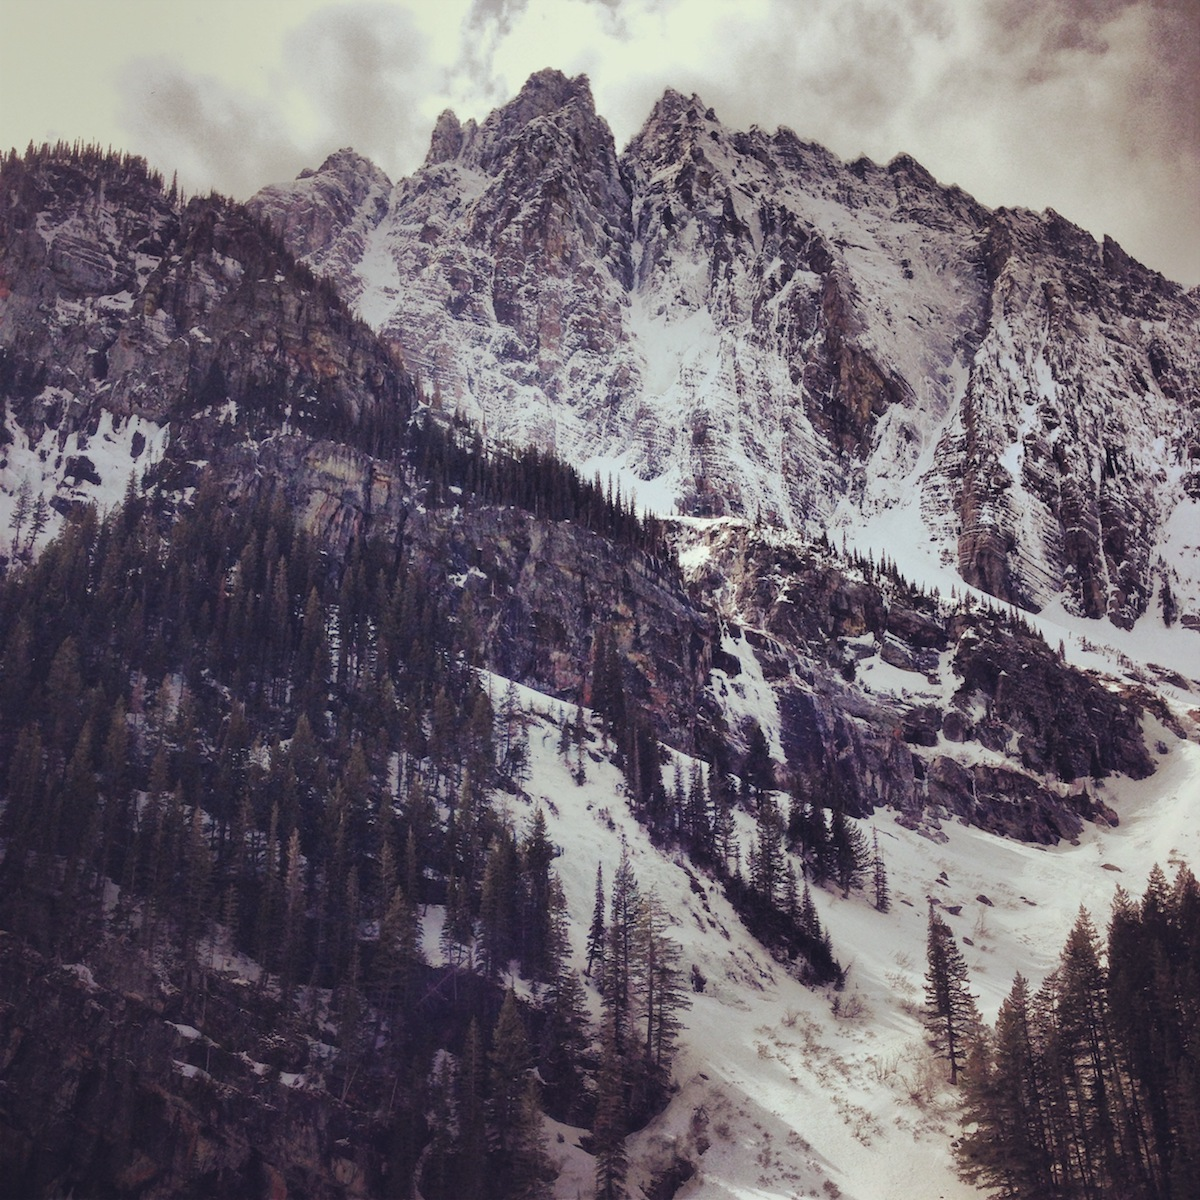 A Peak's north face with the prominent couloir of Canmore Wedding Party visible in the center. [Photo] Jess Roskelley